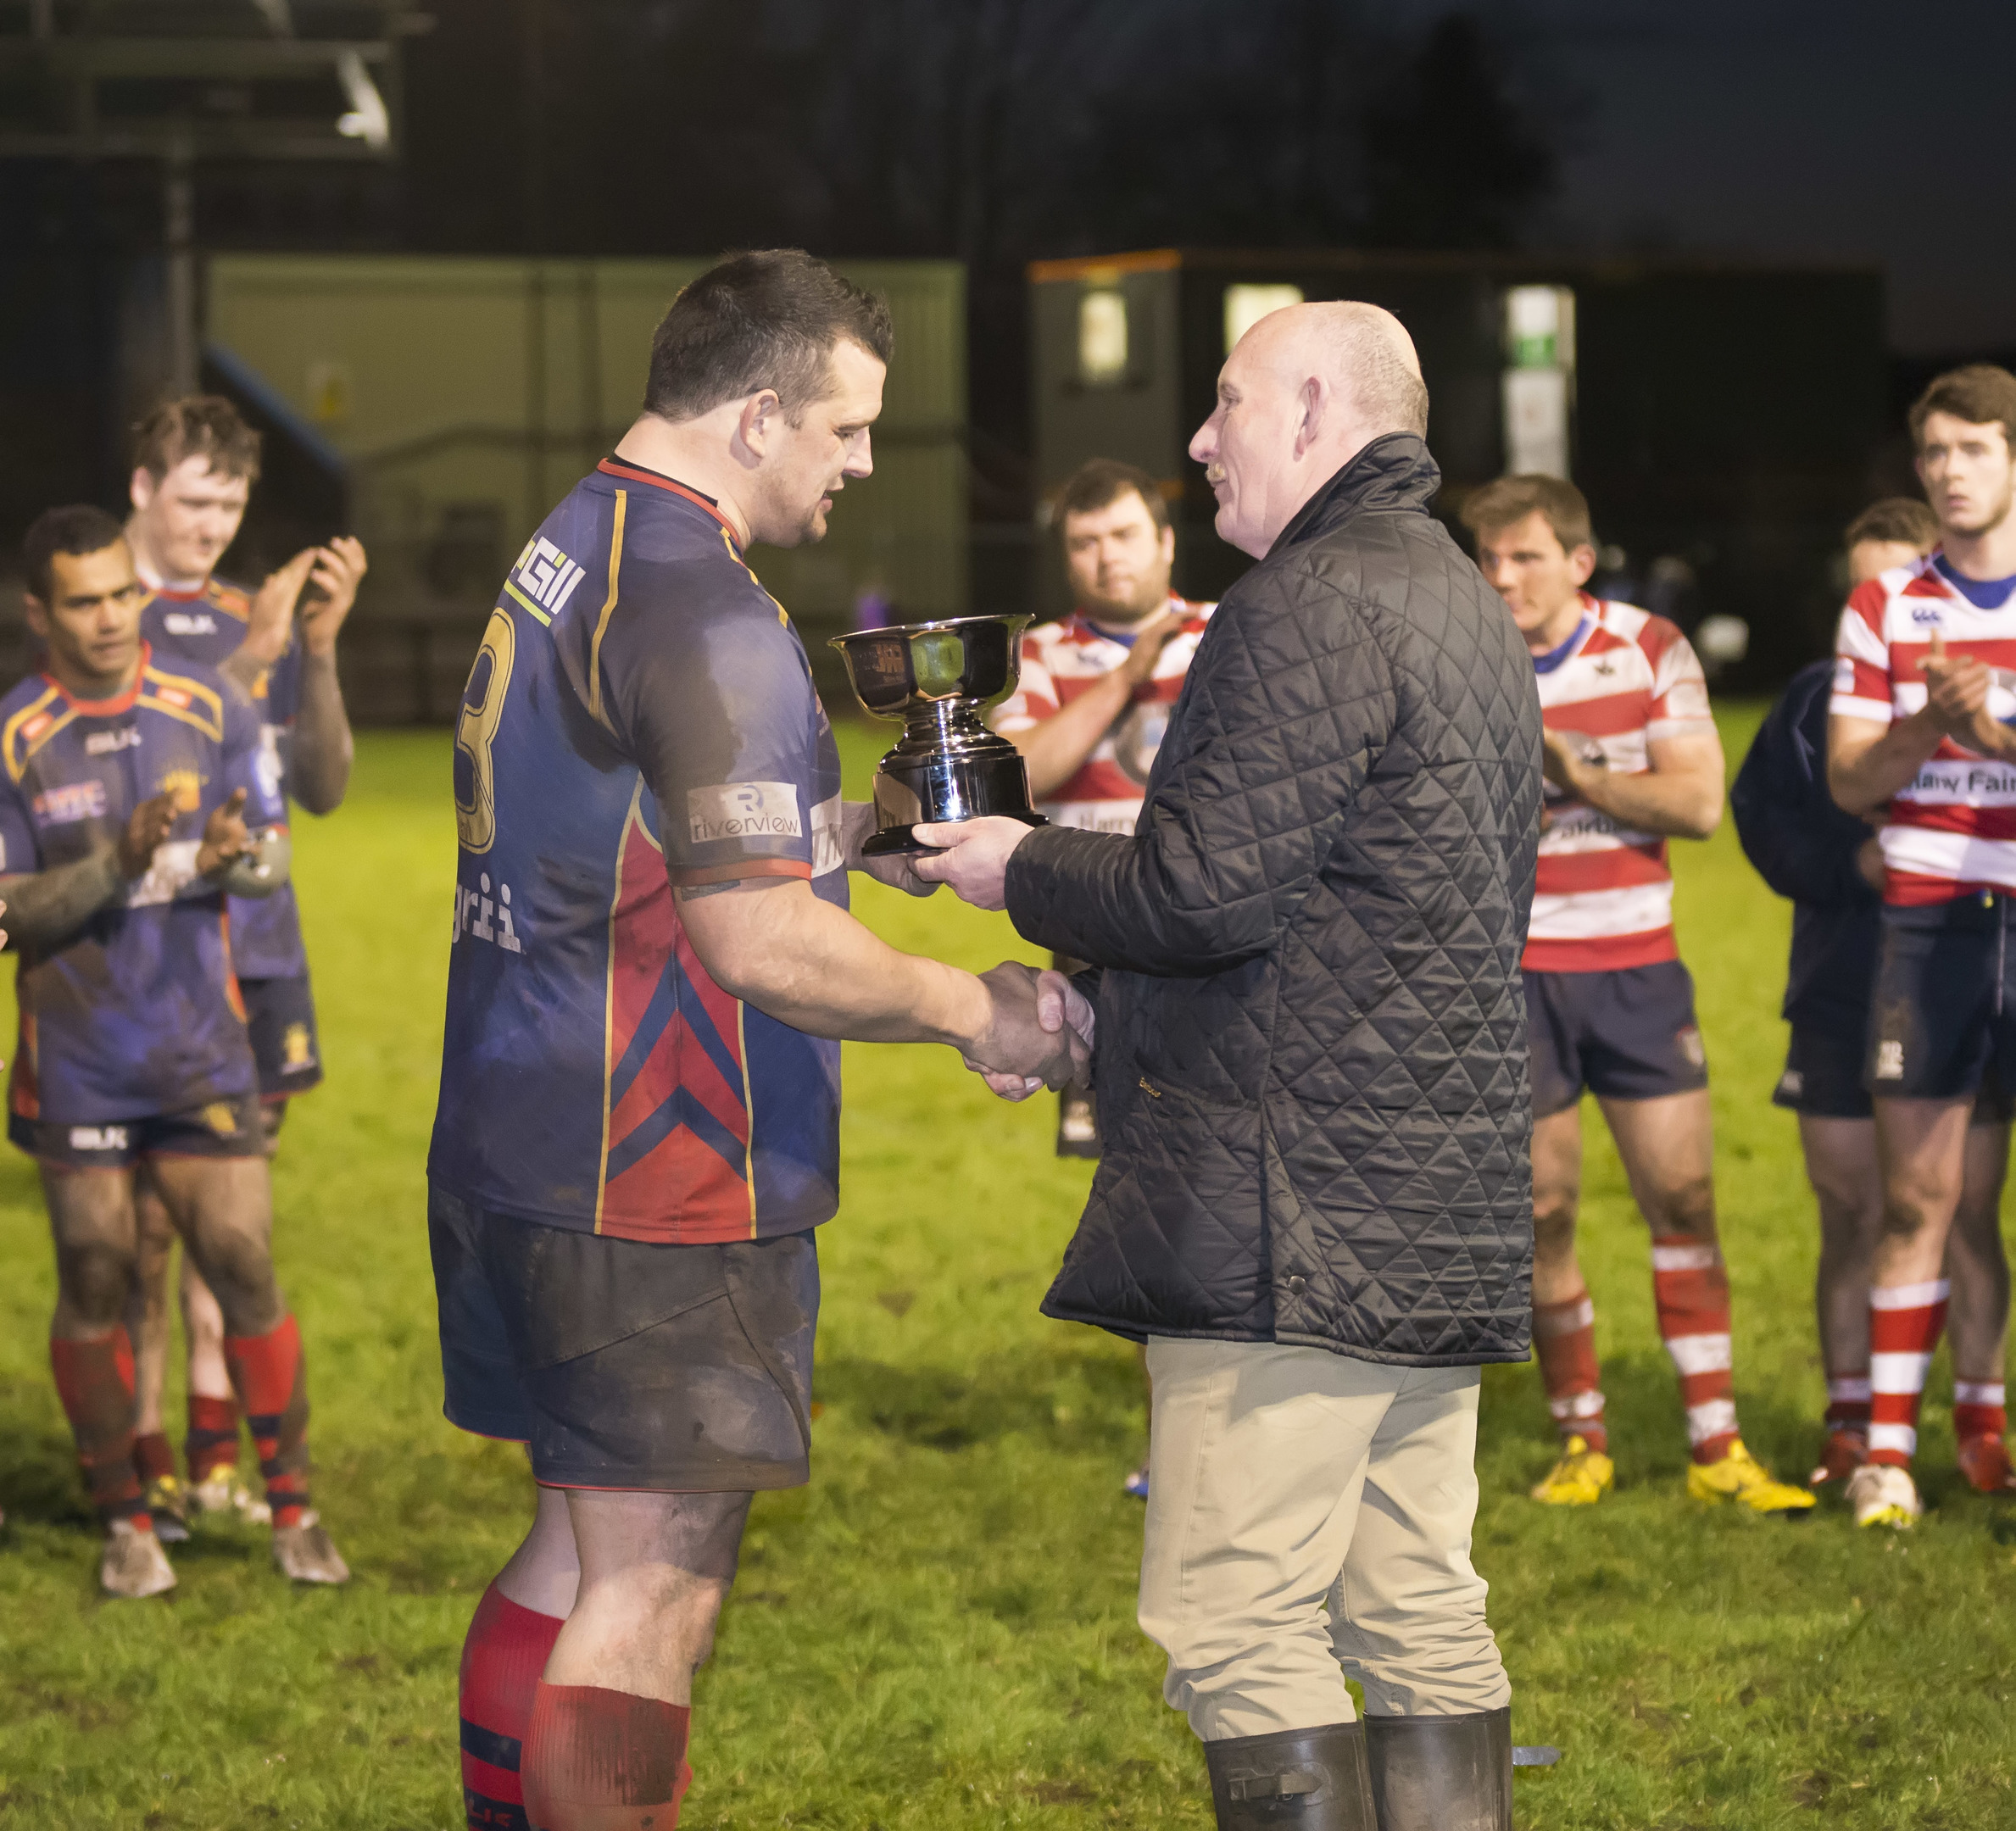 Ian Rankin presents the Rankin Bowl to Dundee HSFP skipper Alan Brown after last year's clash between the teams at Duffus Park.